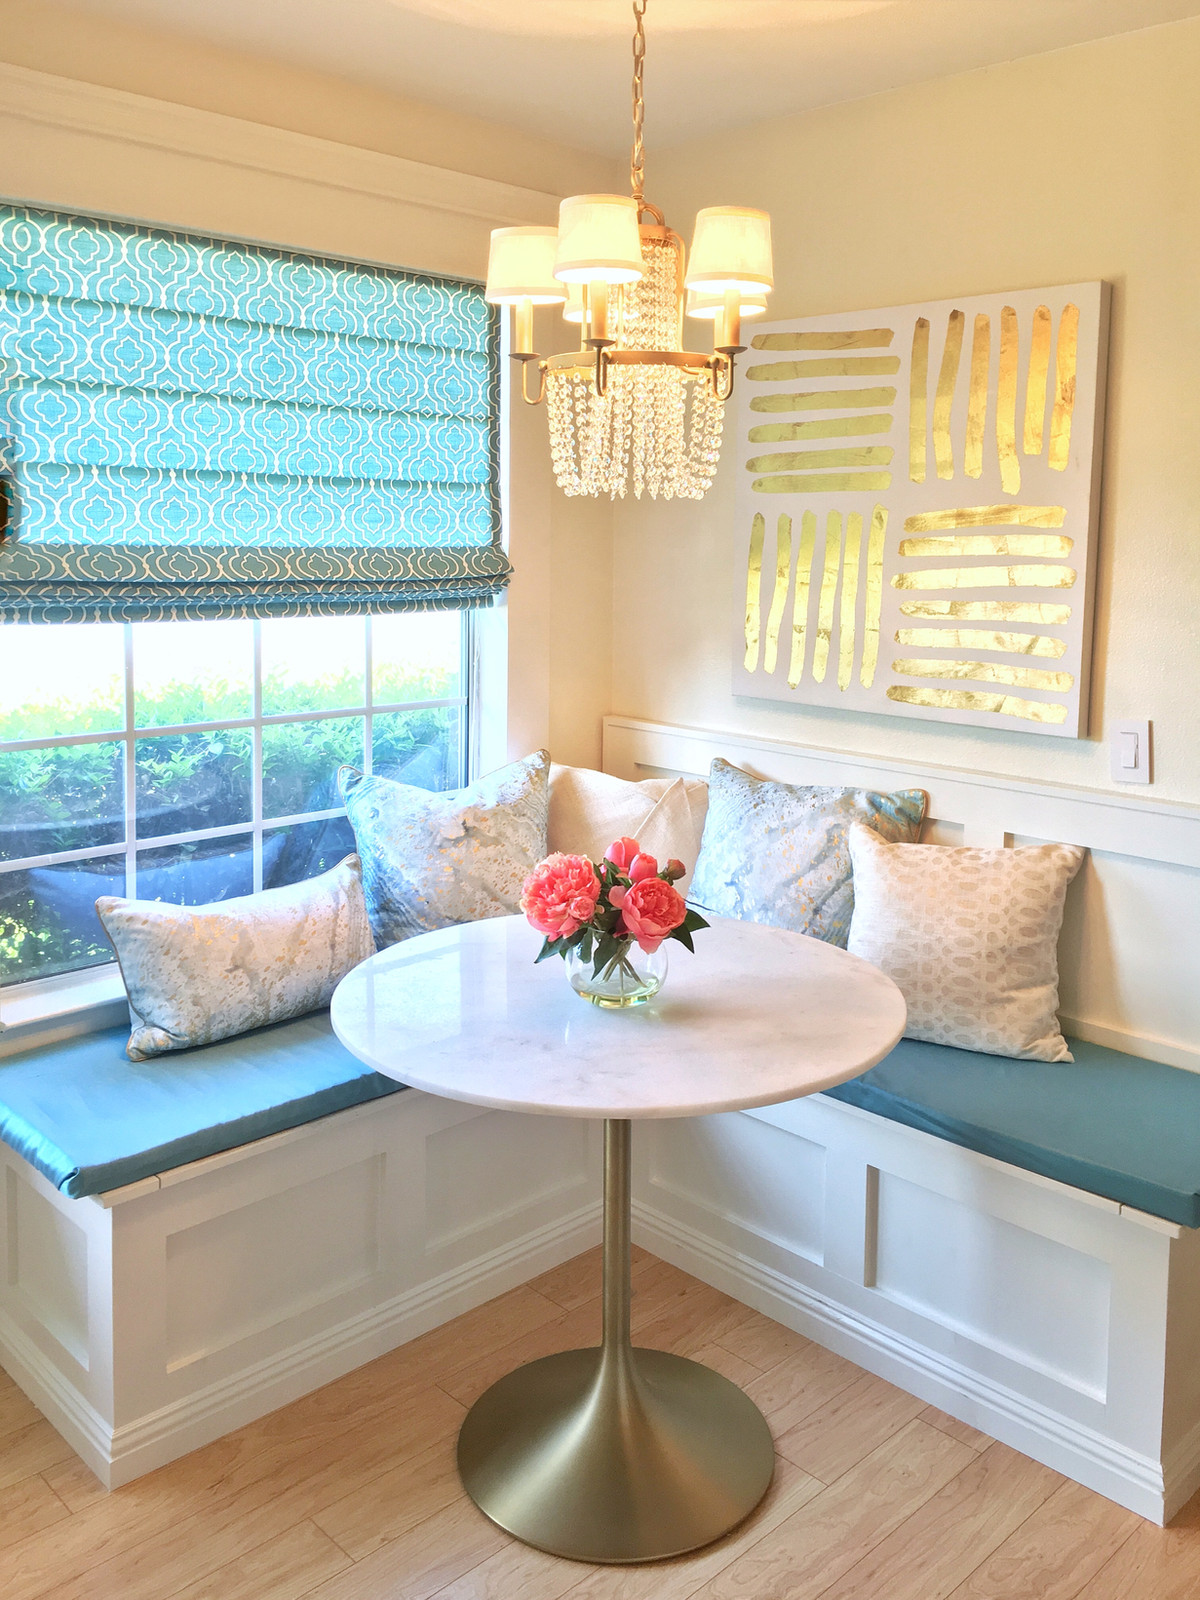 Kristen Fredericks Design Offers Affordable Interior Design Services To  Clients Living In Hanford, California As Well As The Surrounding Areas Of  Lemoore, ...